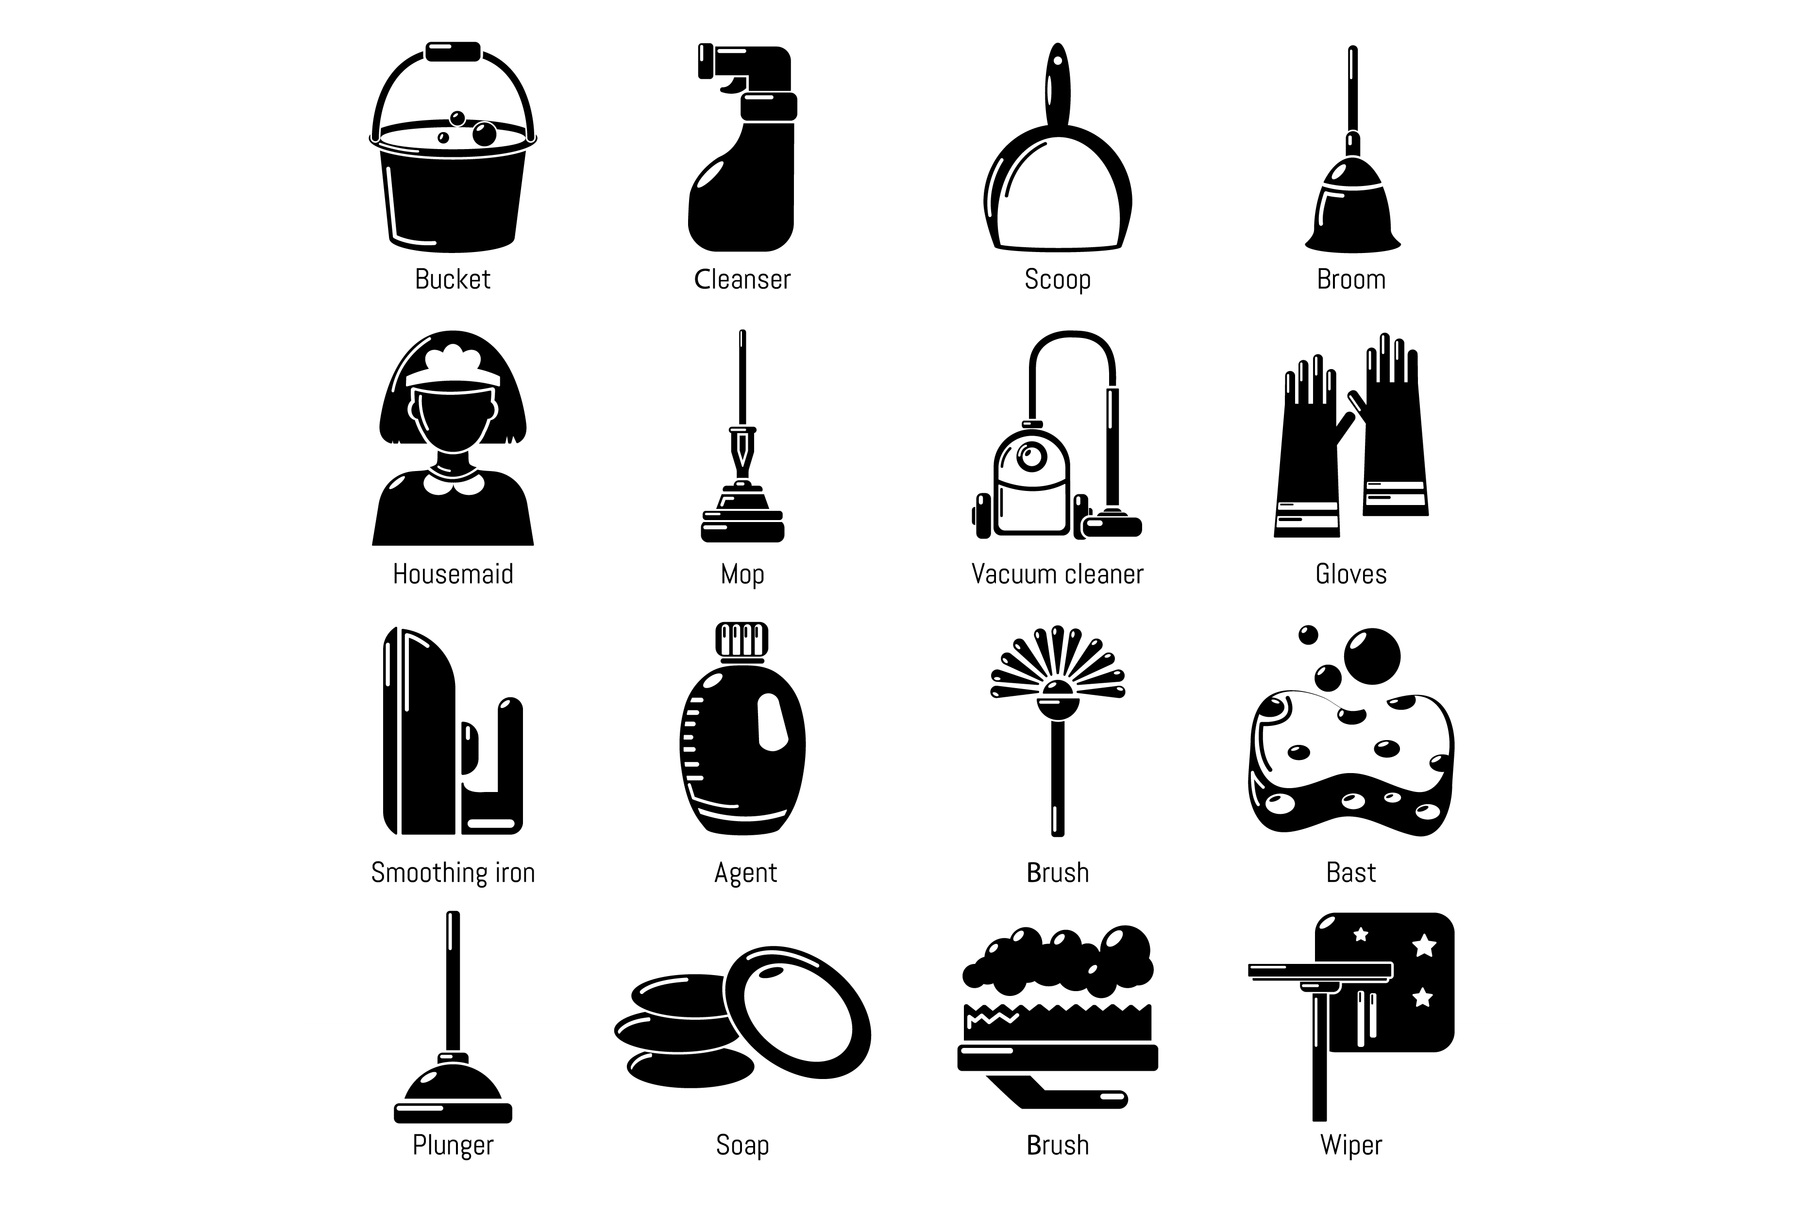 Cleaning tools icons set, simple style example image 1